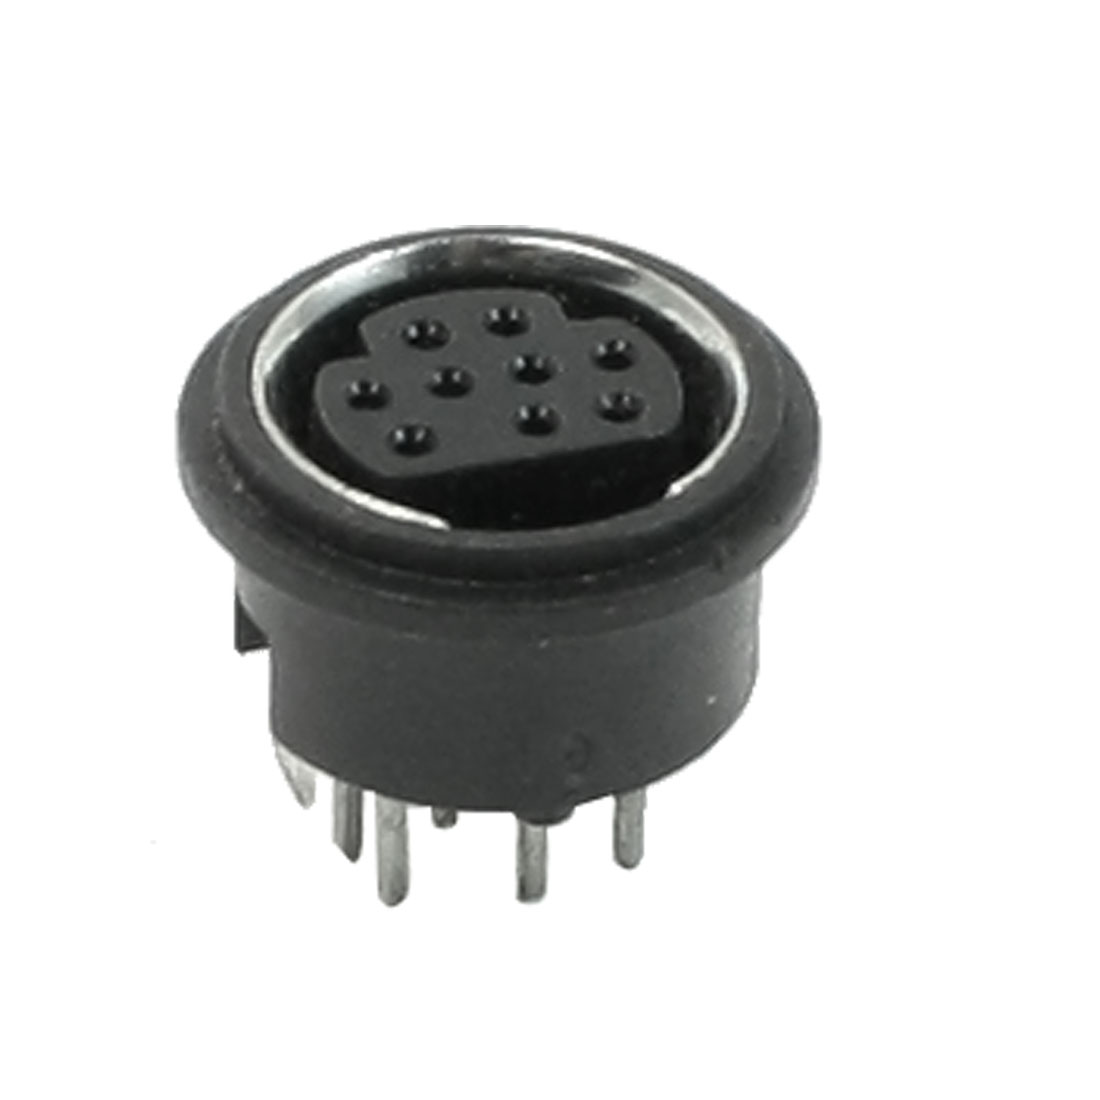 Din 9 Mini Pin Female Round Top PCB Mount S-video Sockets Connectors